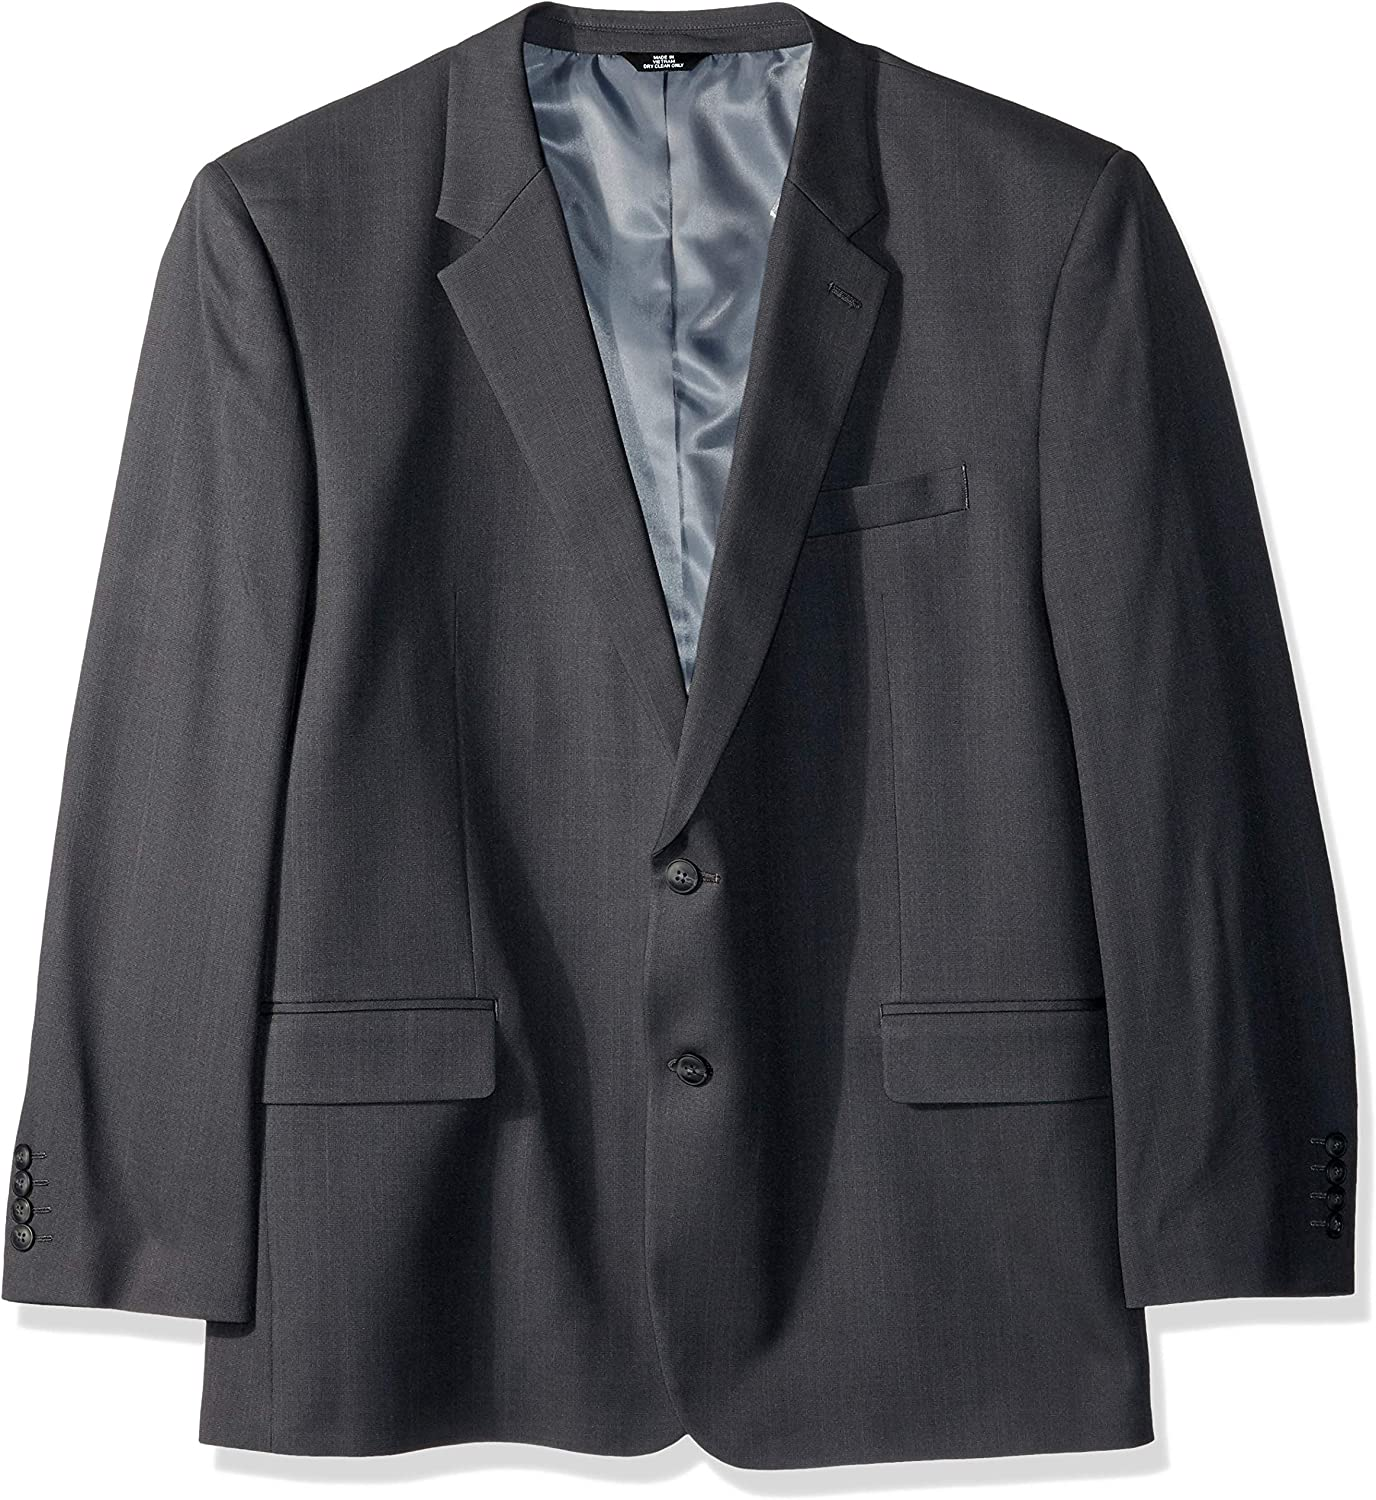 Haggar Men's Big and Tall B&T Stria Tic Stretch Classic Fit Suit Separate Coat, Dark Grey Heather, 56R